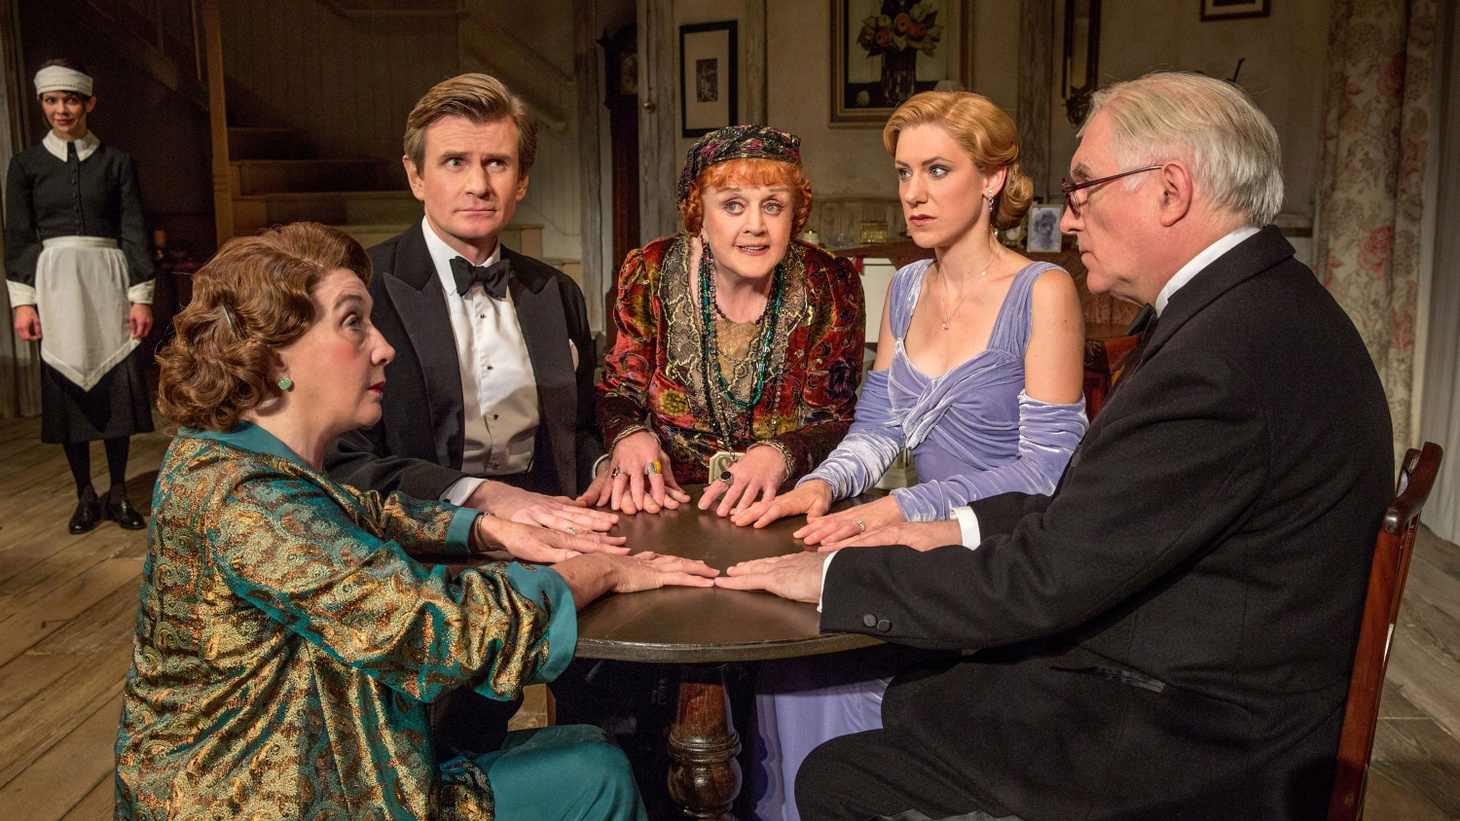 If you've still got holes on your holiday gift list or are looking for something to do with the in-laws from out of town, Blithe Spirit at the Ahmanson is the perfect theatrical distraction.